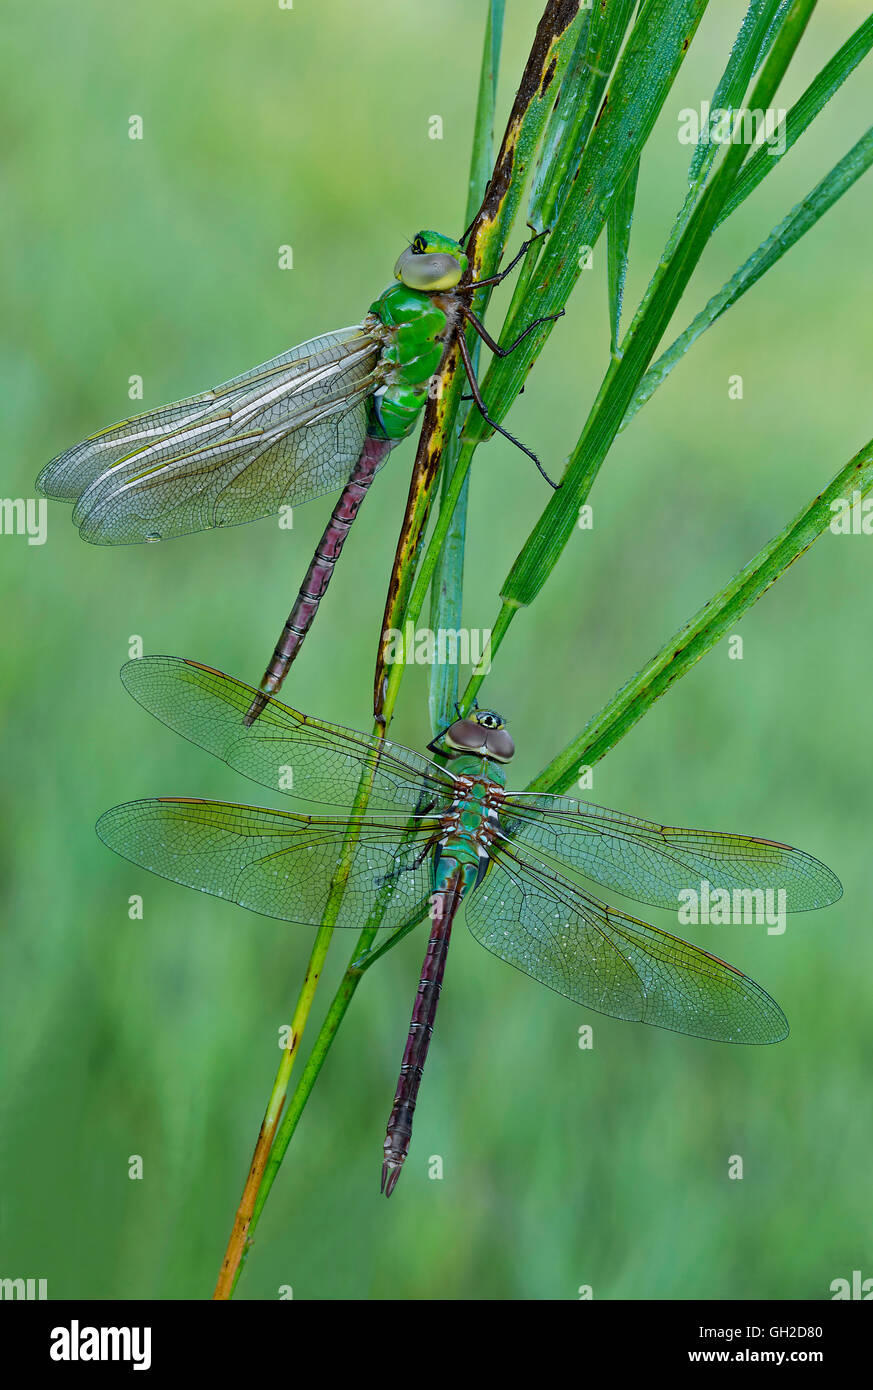 Pair of Common Adult Green Darner Dragonflies (Anax junius) resting on blades of grass,  Eastern USA - Stock Image